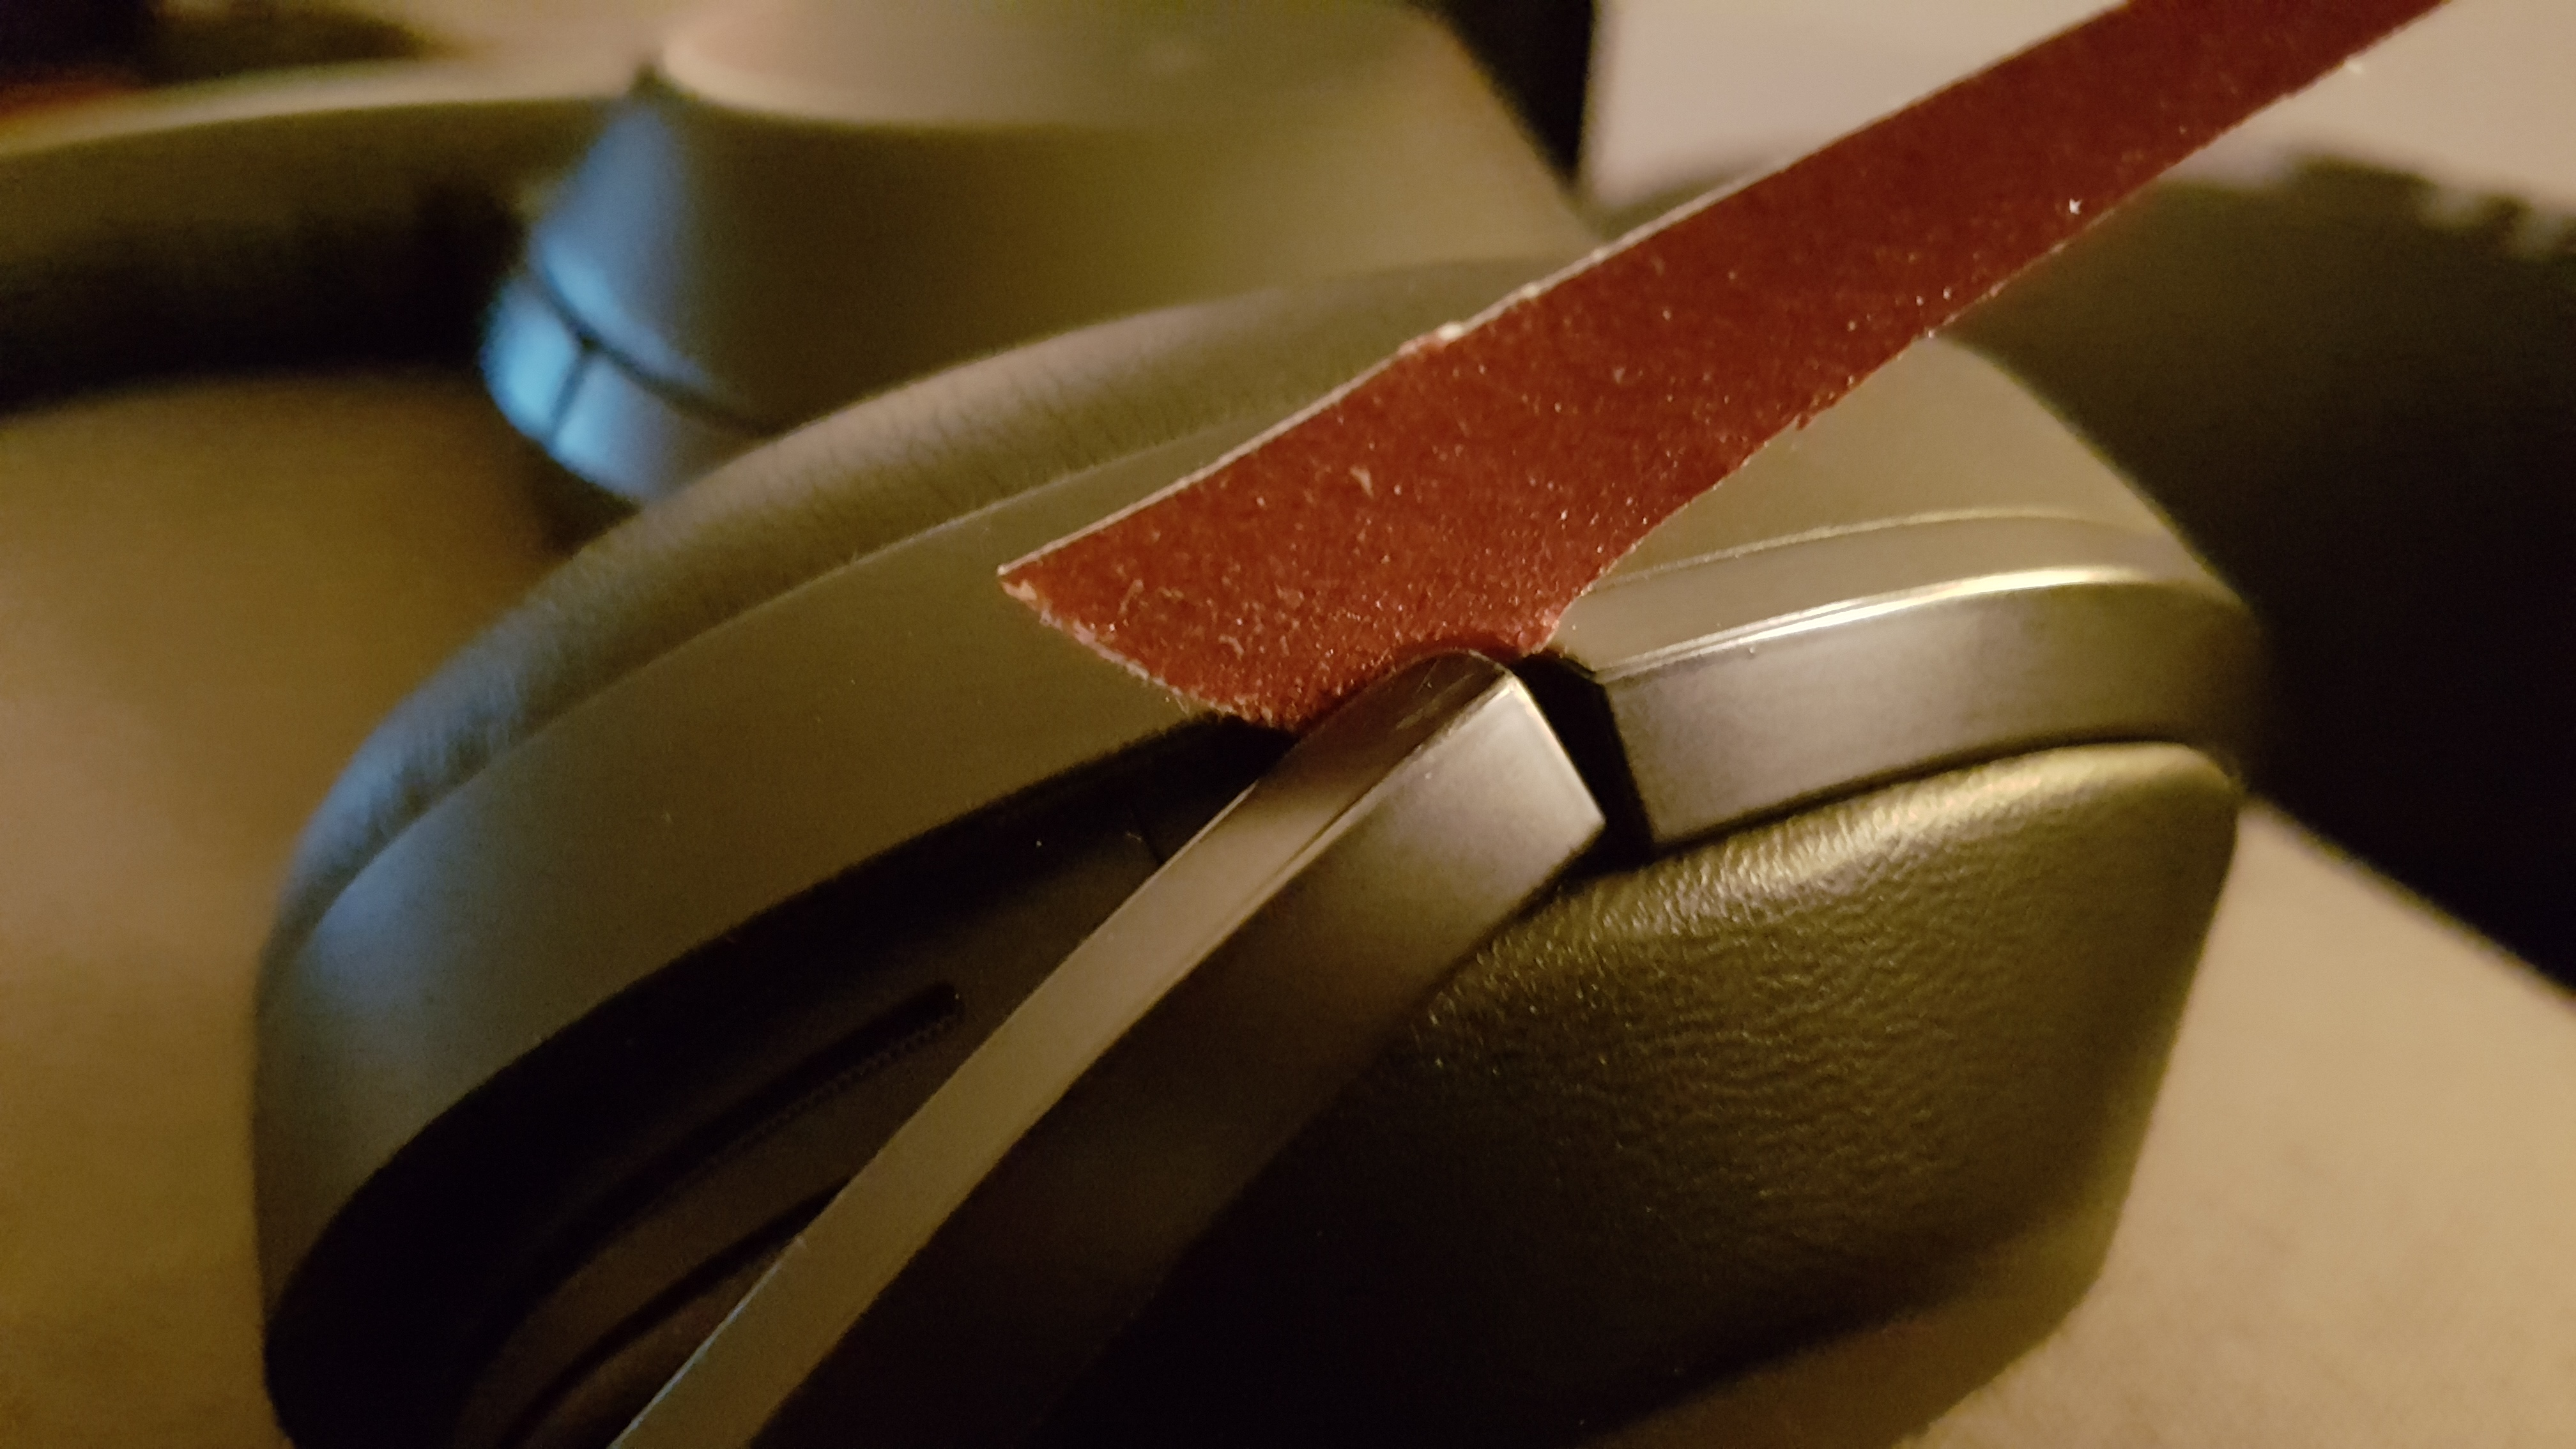 Sony MDR-1000X | Page 62 | Headphone Reviews and Discussion